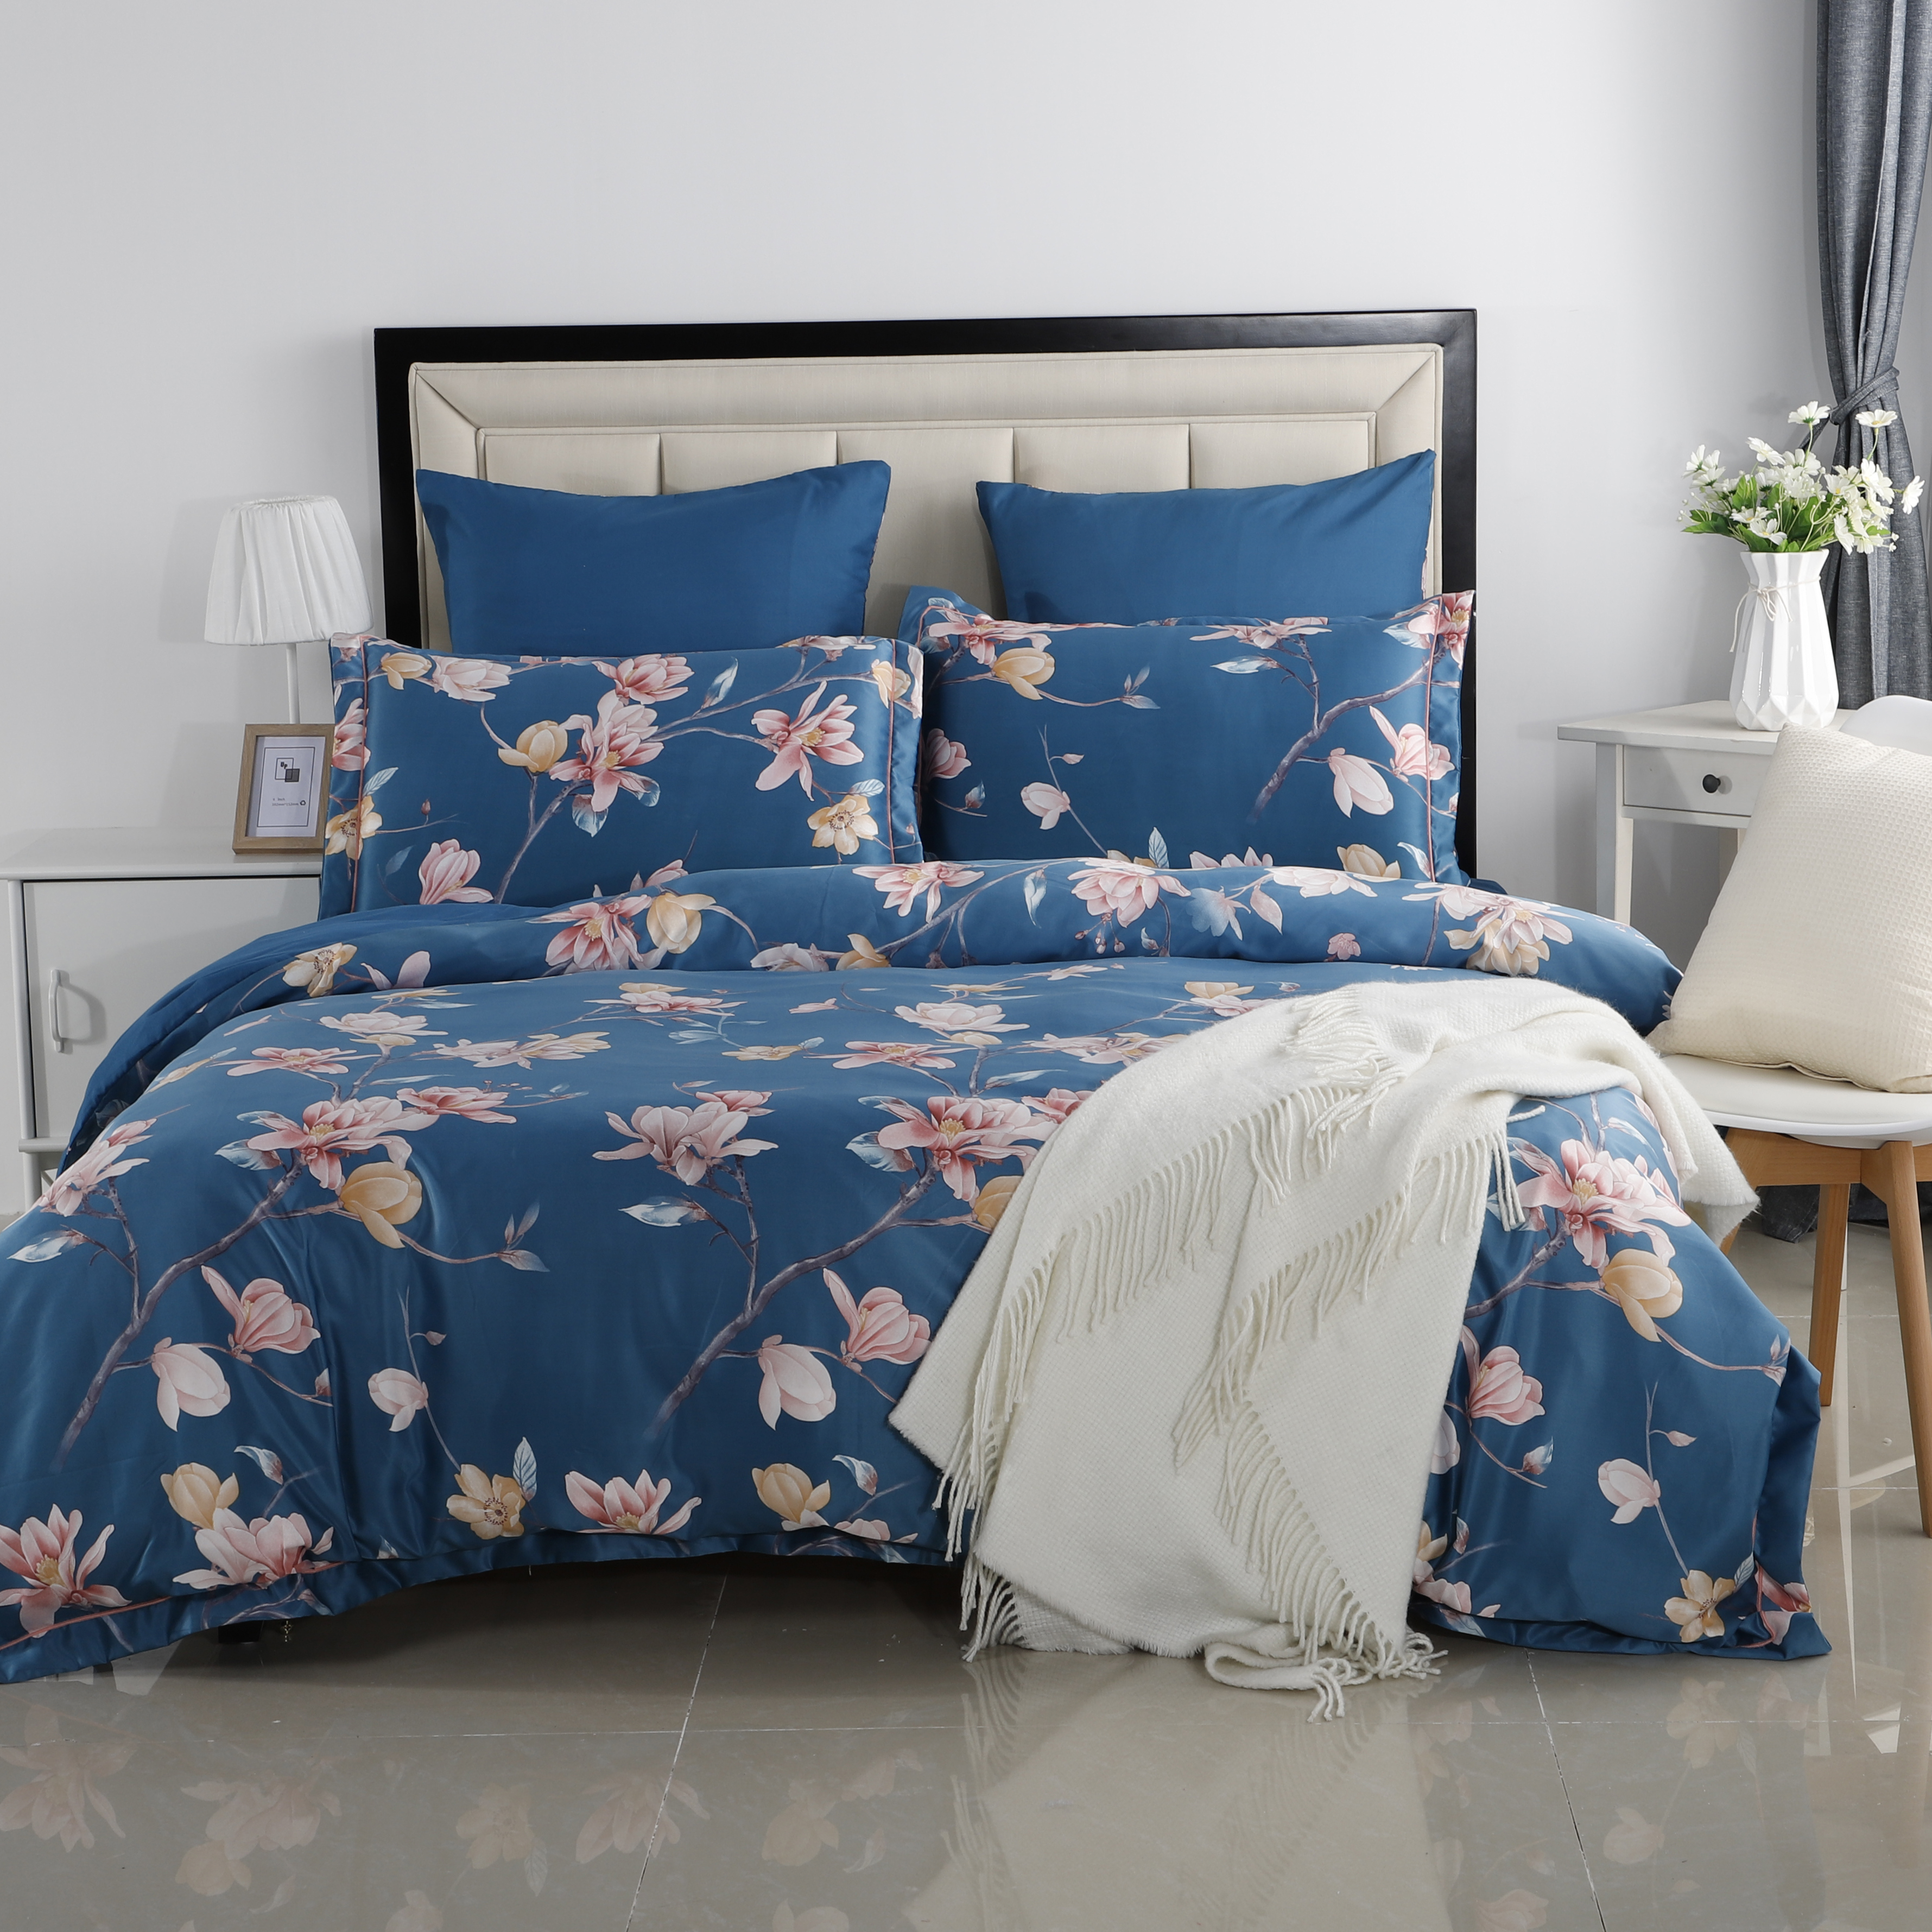 YAXINLAN luxury bedding set Bed linen Pure cotton Plant flowers Fashion Flower Patterns Bed sheet quilt cover pillowcase 6pcs